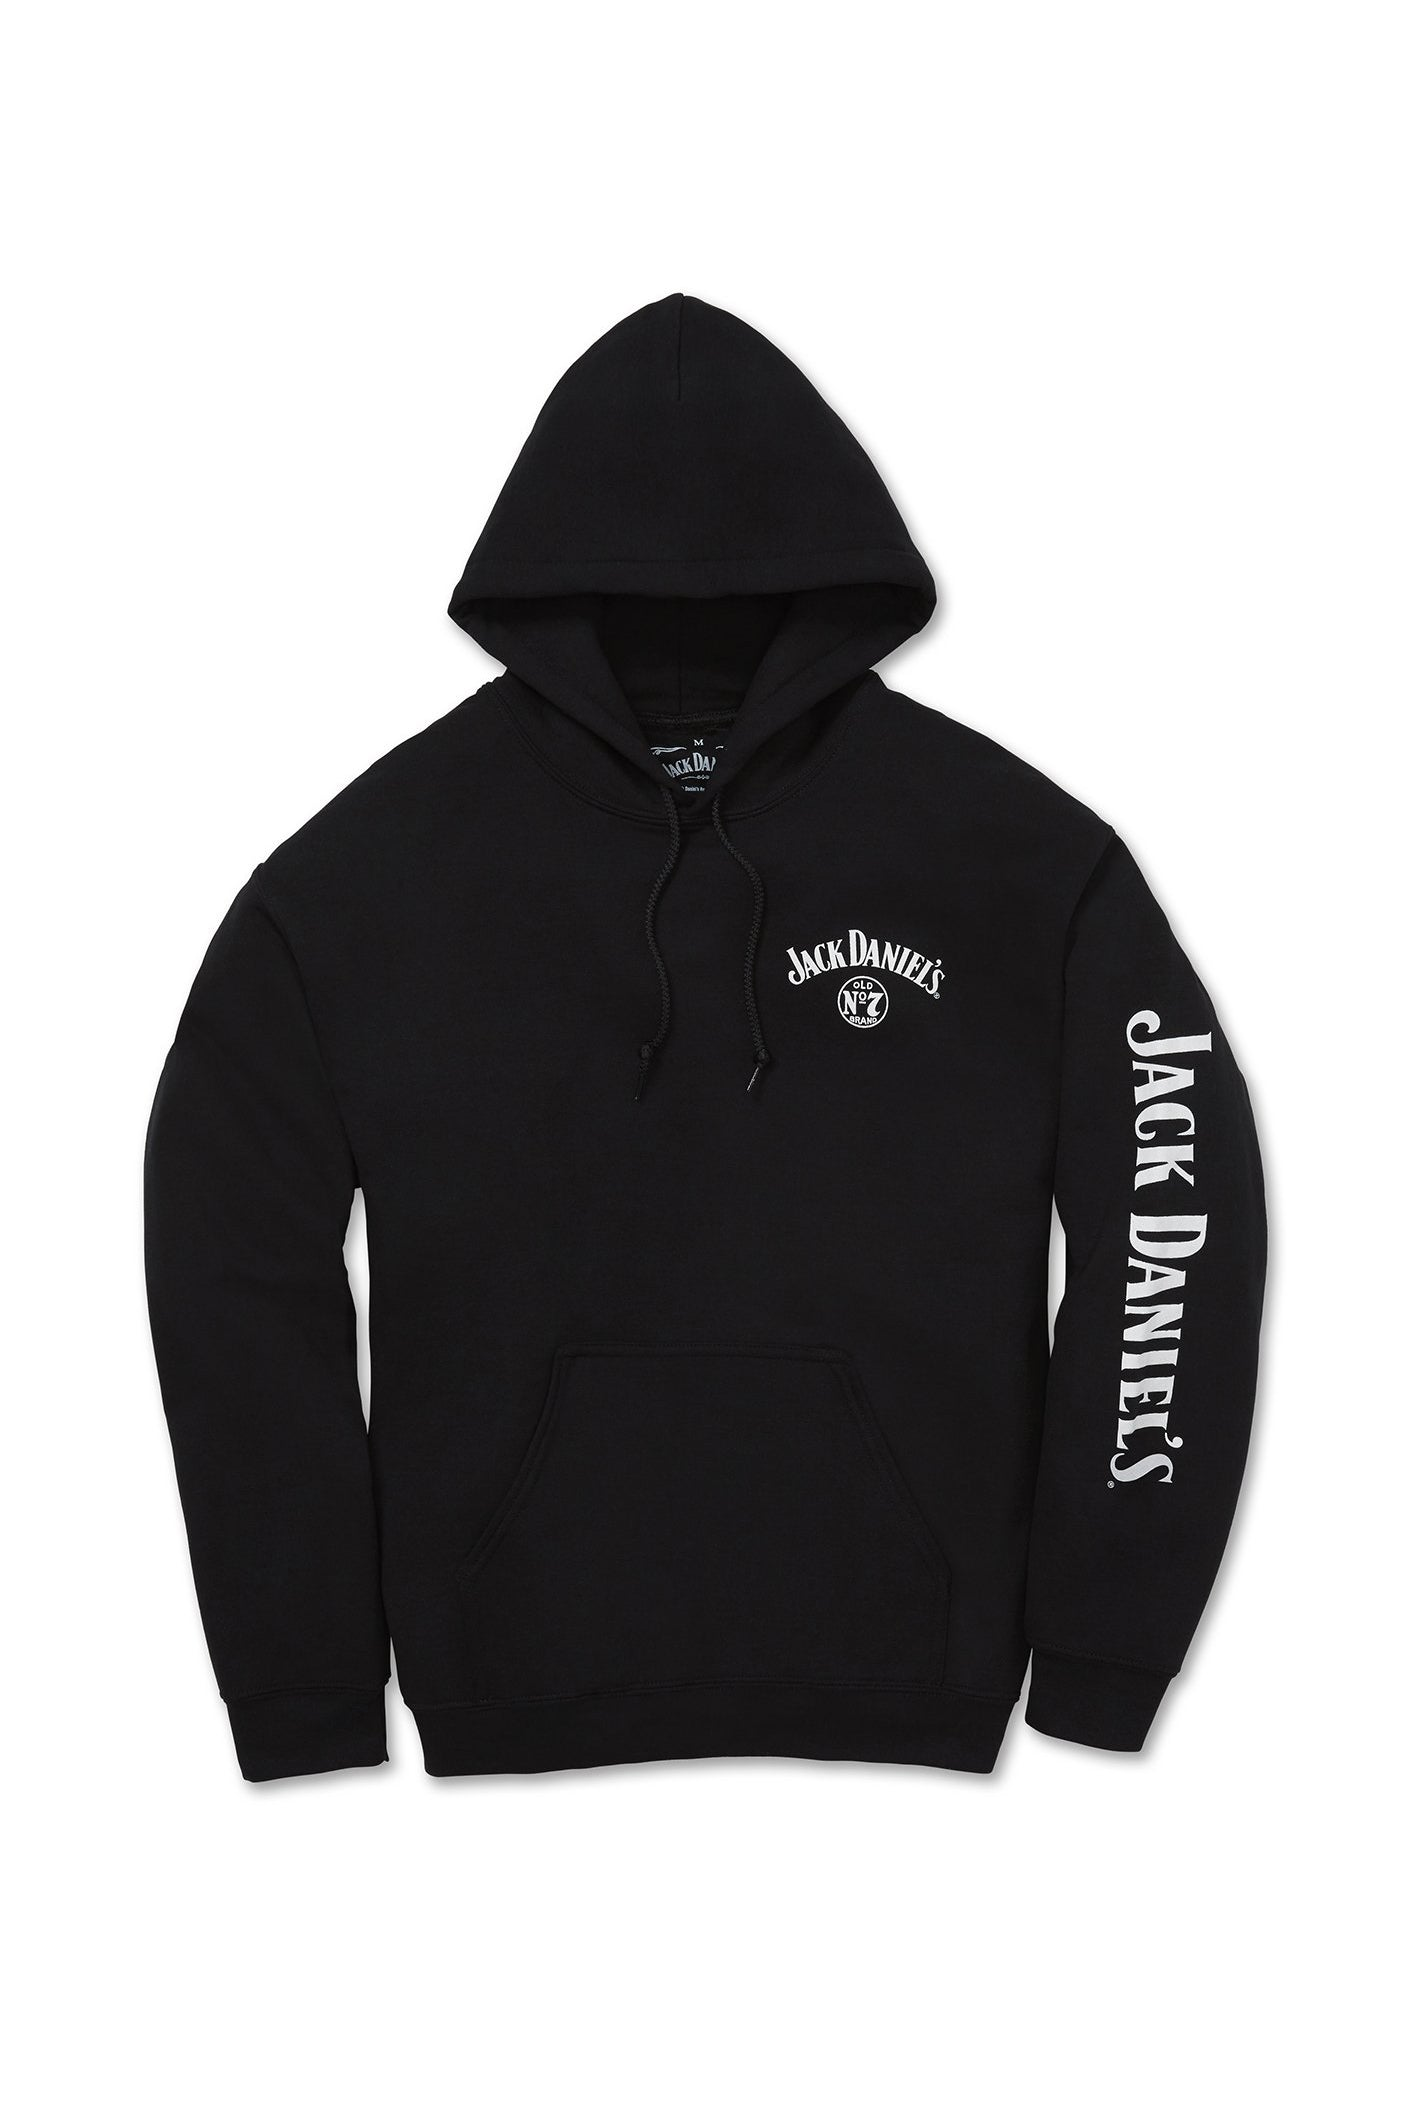 Men's Jack Daniel's® Old No.7 Hoodie | Ely Cattleman